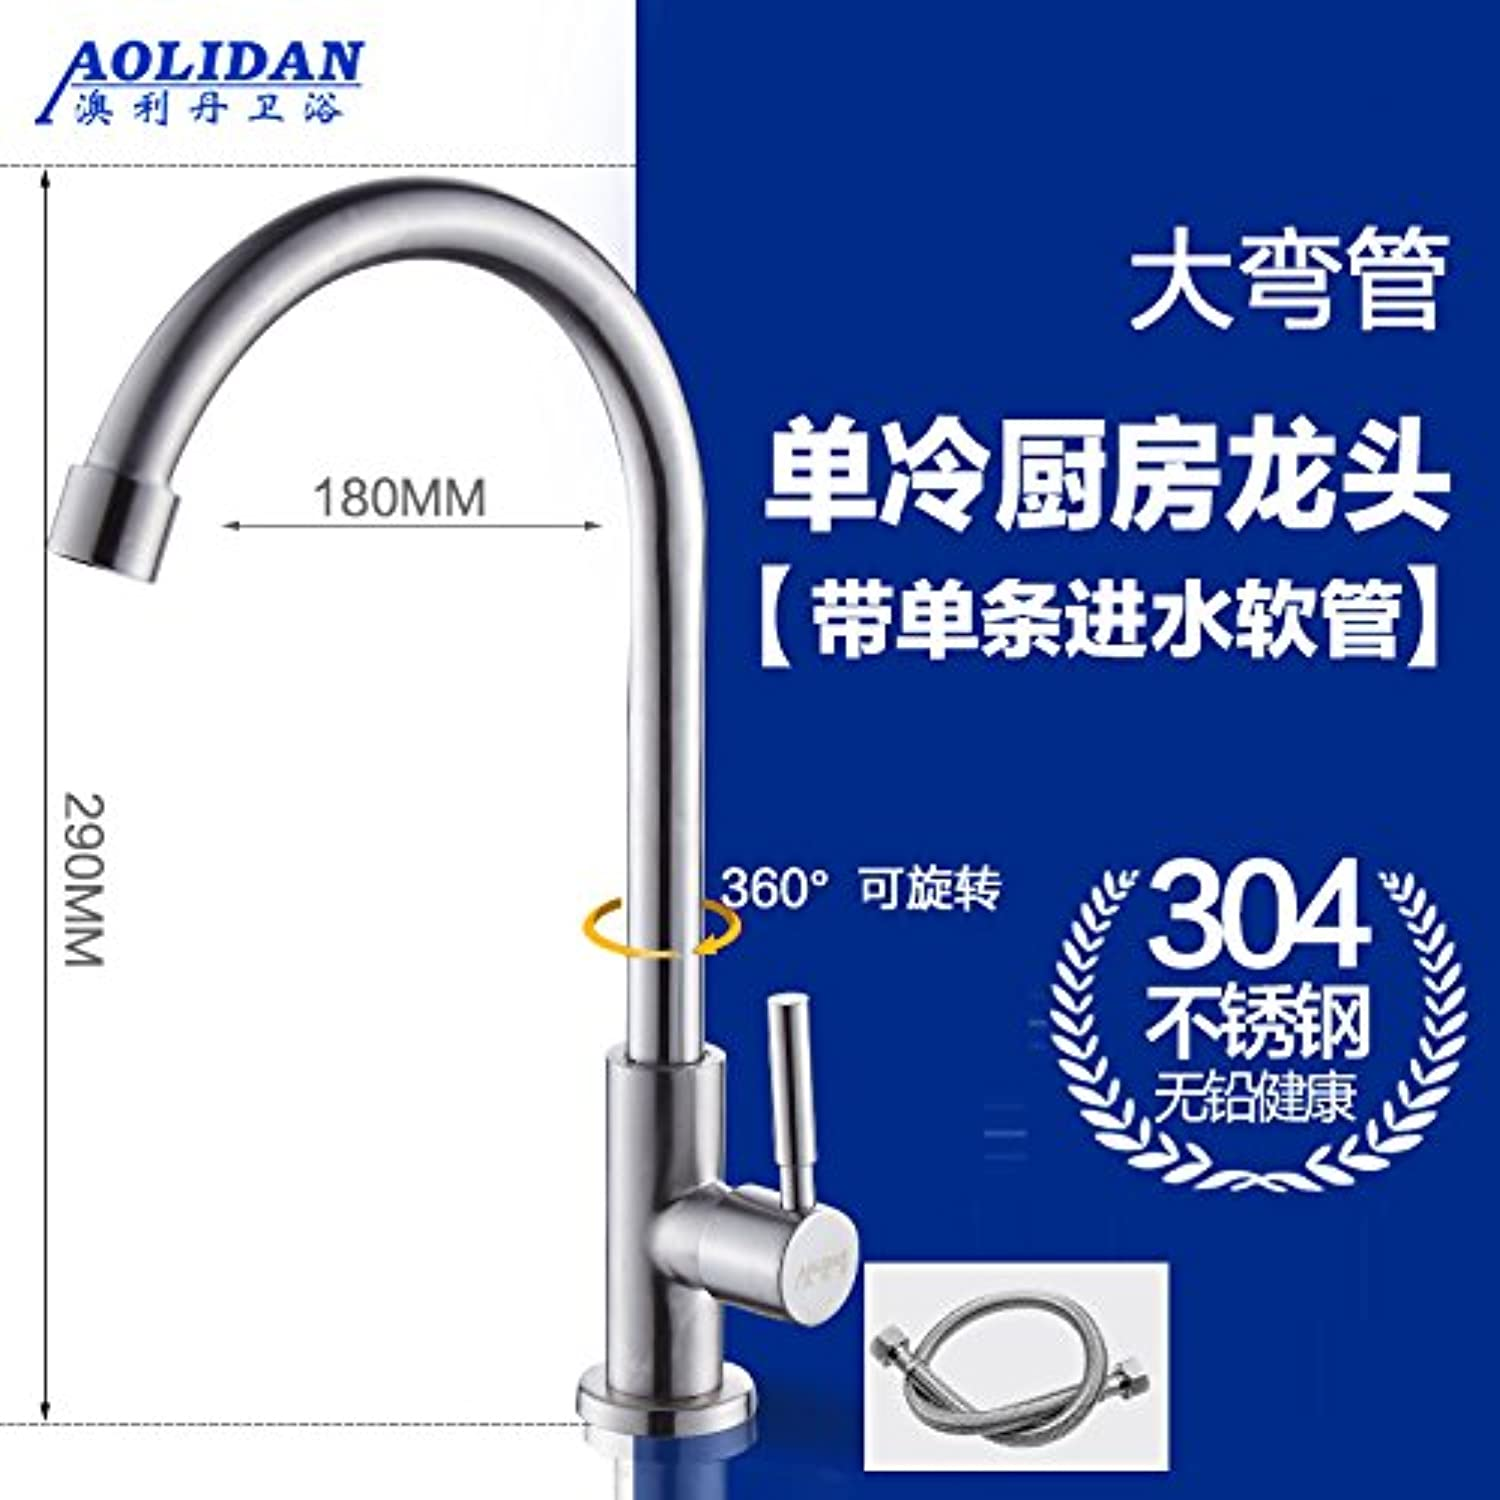 Commercial Single Lever Pull Down Kitchen Sink Faucet Brass304 Stainless Steel Kitchen Single Cold Faucet Basin Sink Sink Faucet Universal Basin Bathroom Bathroom,304 Steel Single Cold 7-Bend Faucet